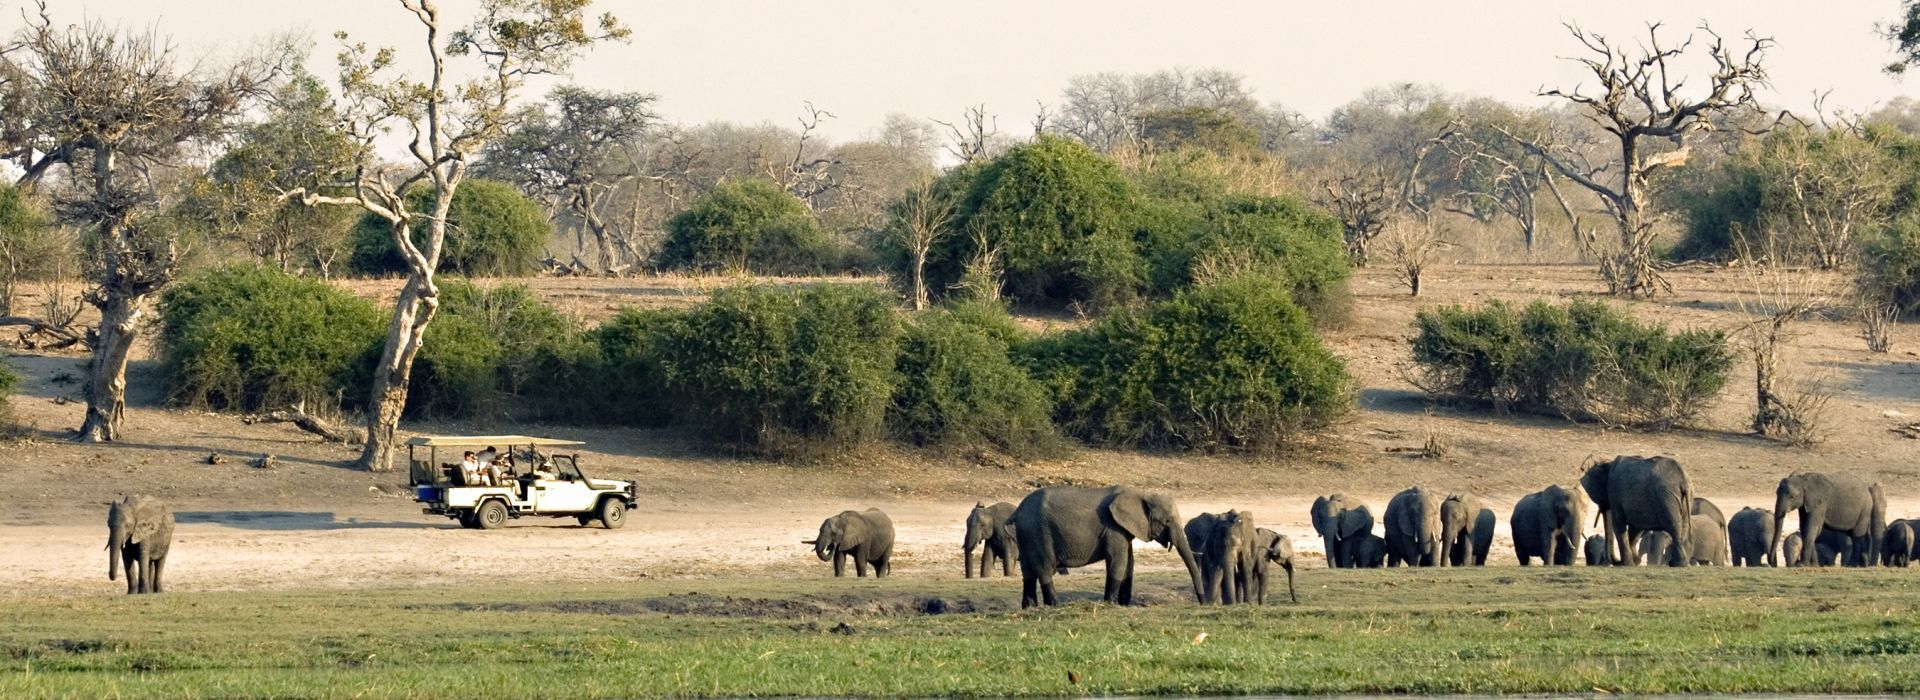 Air tours, road trips and transfers in Botswana